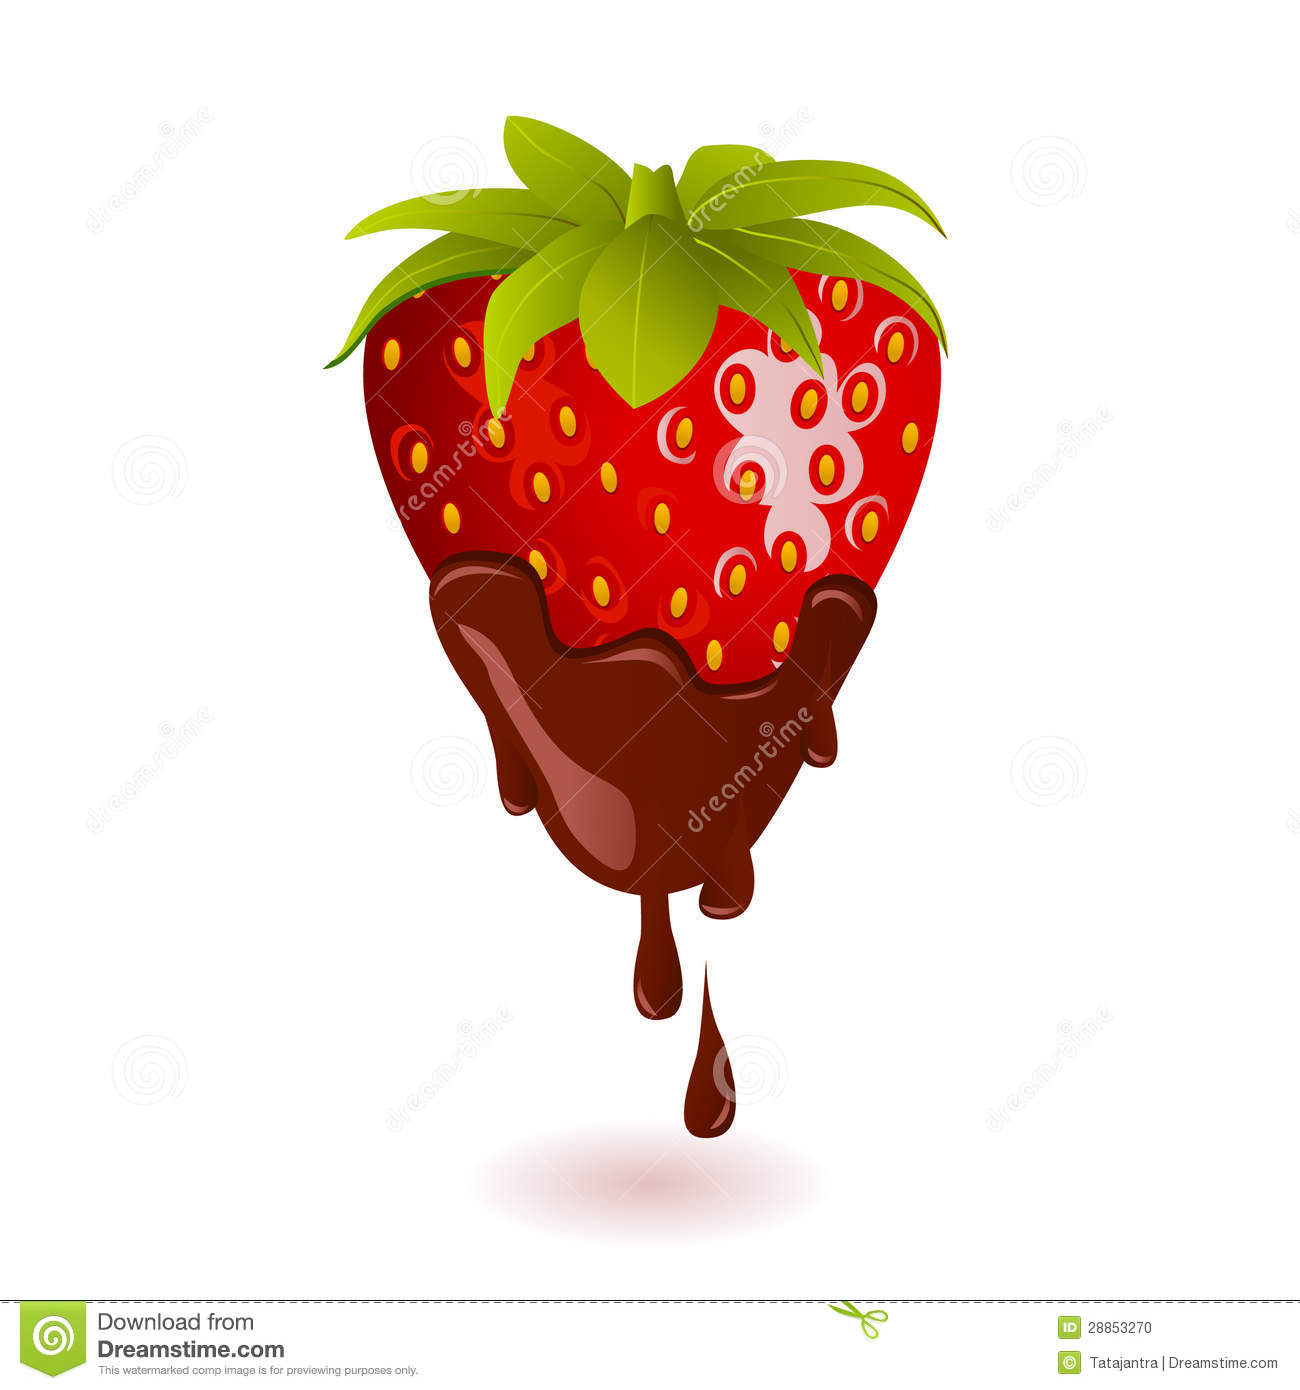 Chocolate Dipped Strawberry Stock Vector - Image: 28853270